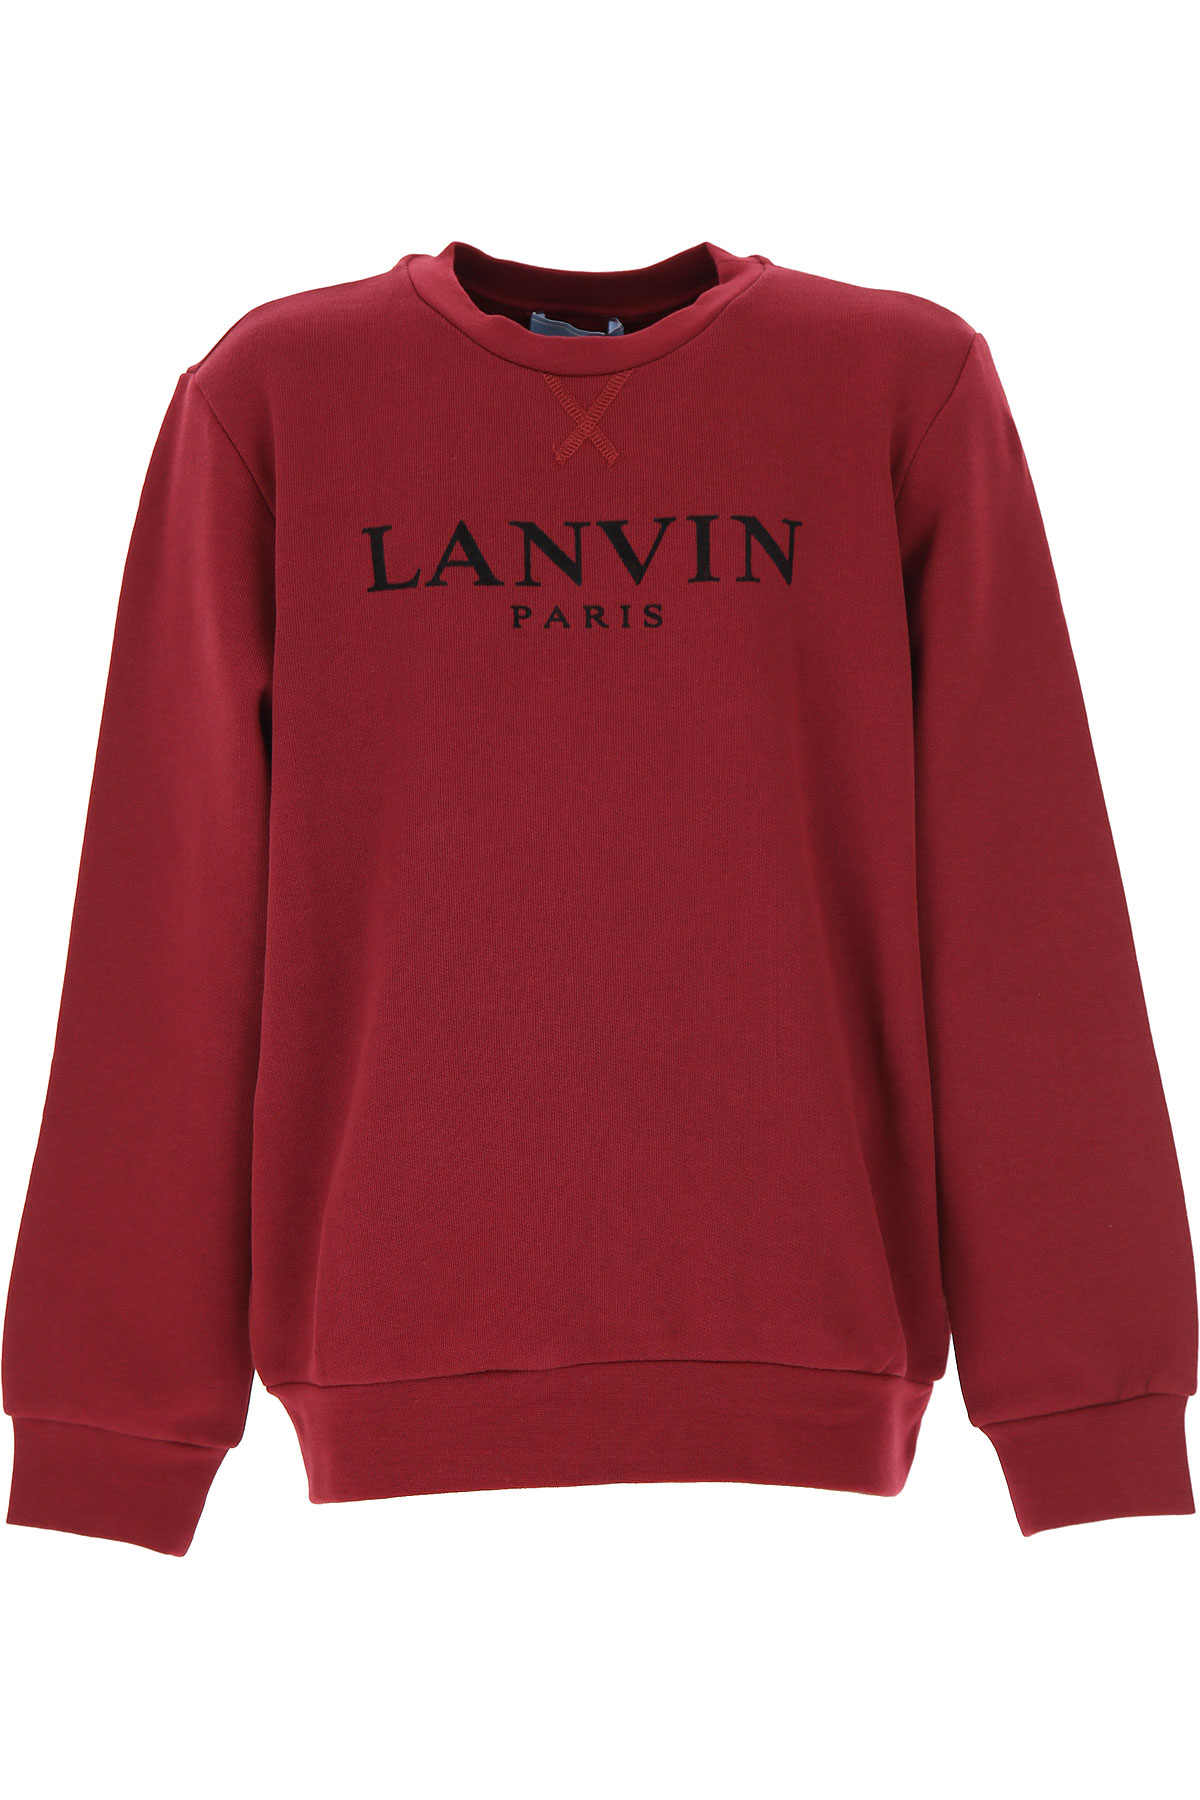 Lanvin Kids Sweatshirts & Hoodies for Boys On Sale, Bordeaux, Cotton, 2019, 10Y 12Y 14Y 6Y